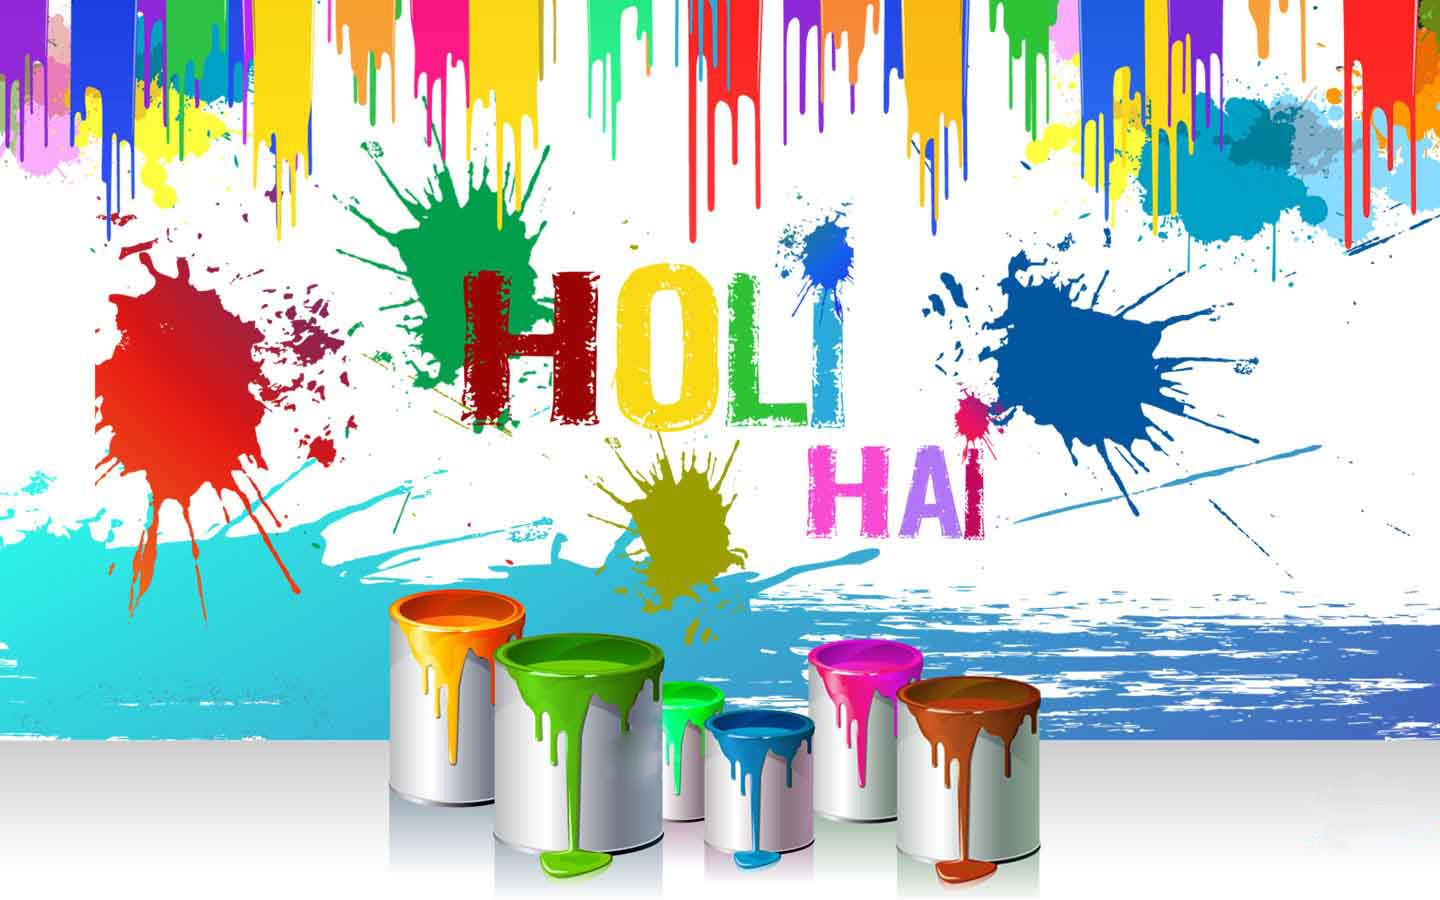 Download Holi Wallpaper For Mobile Cell Phone